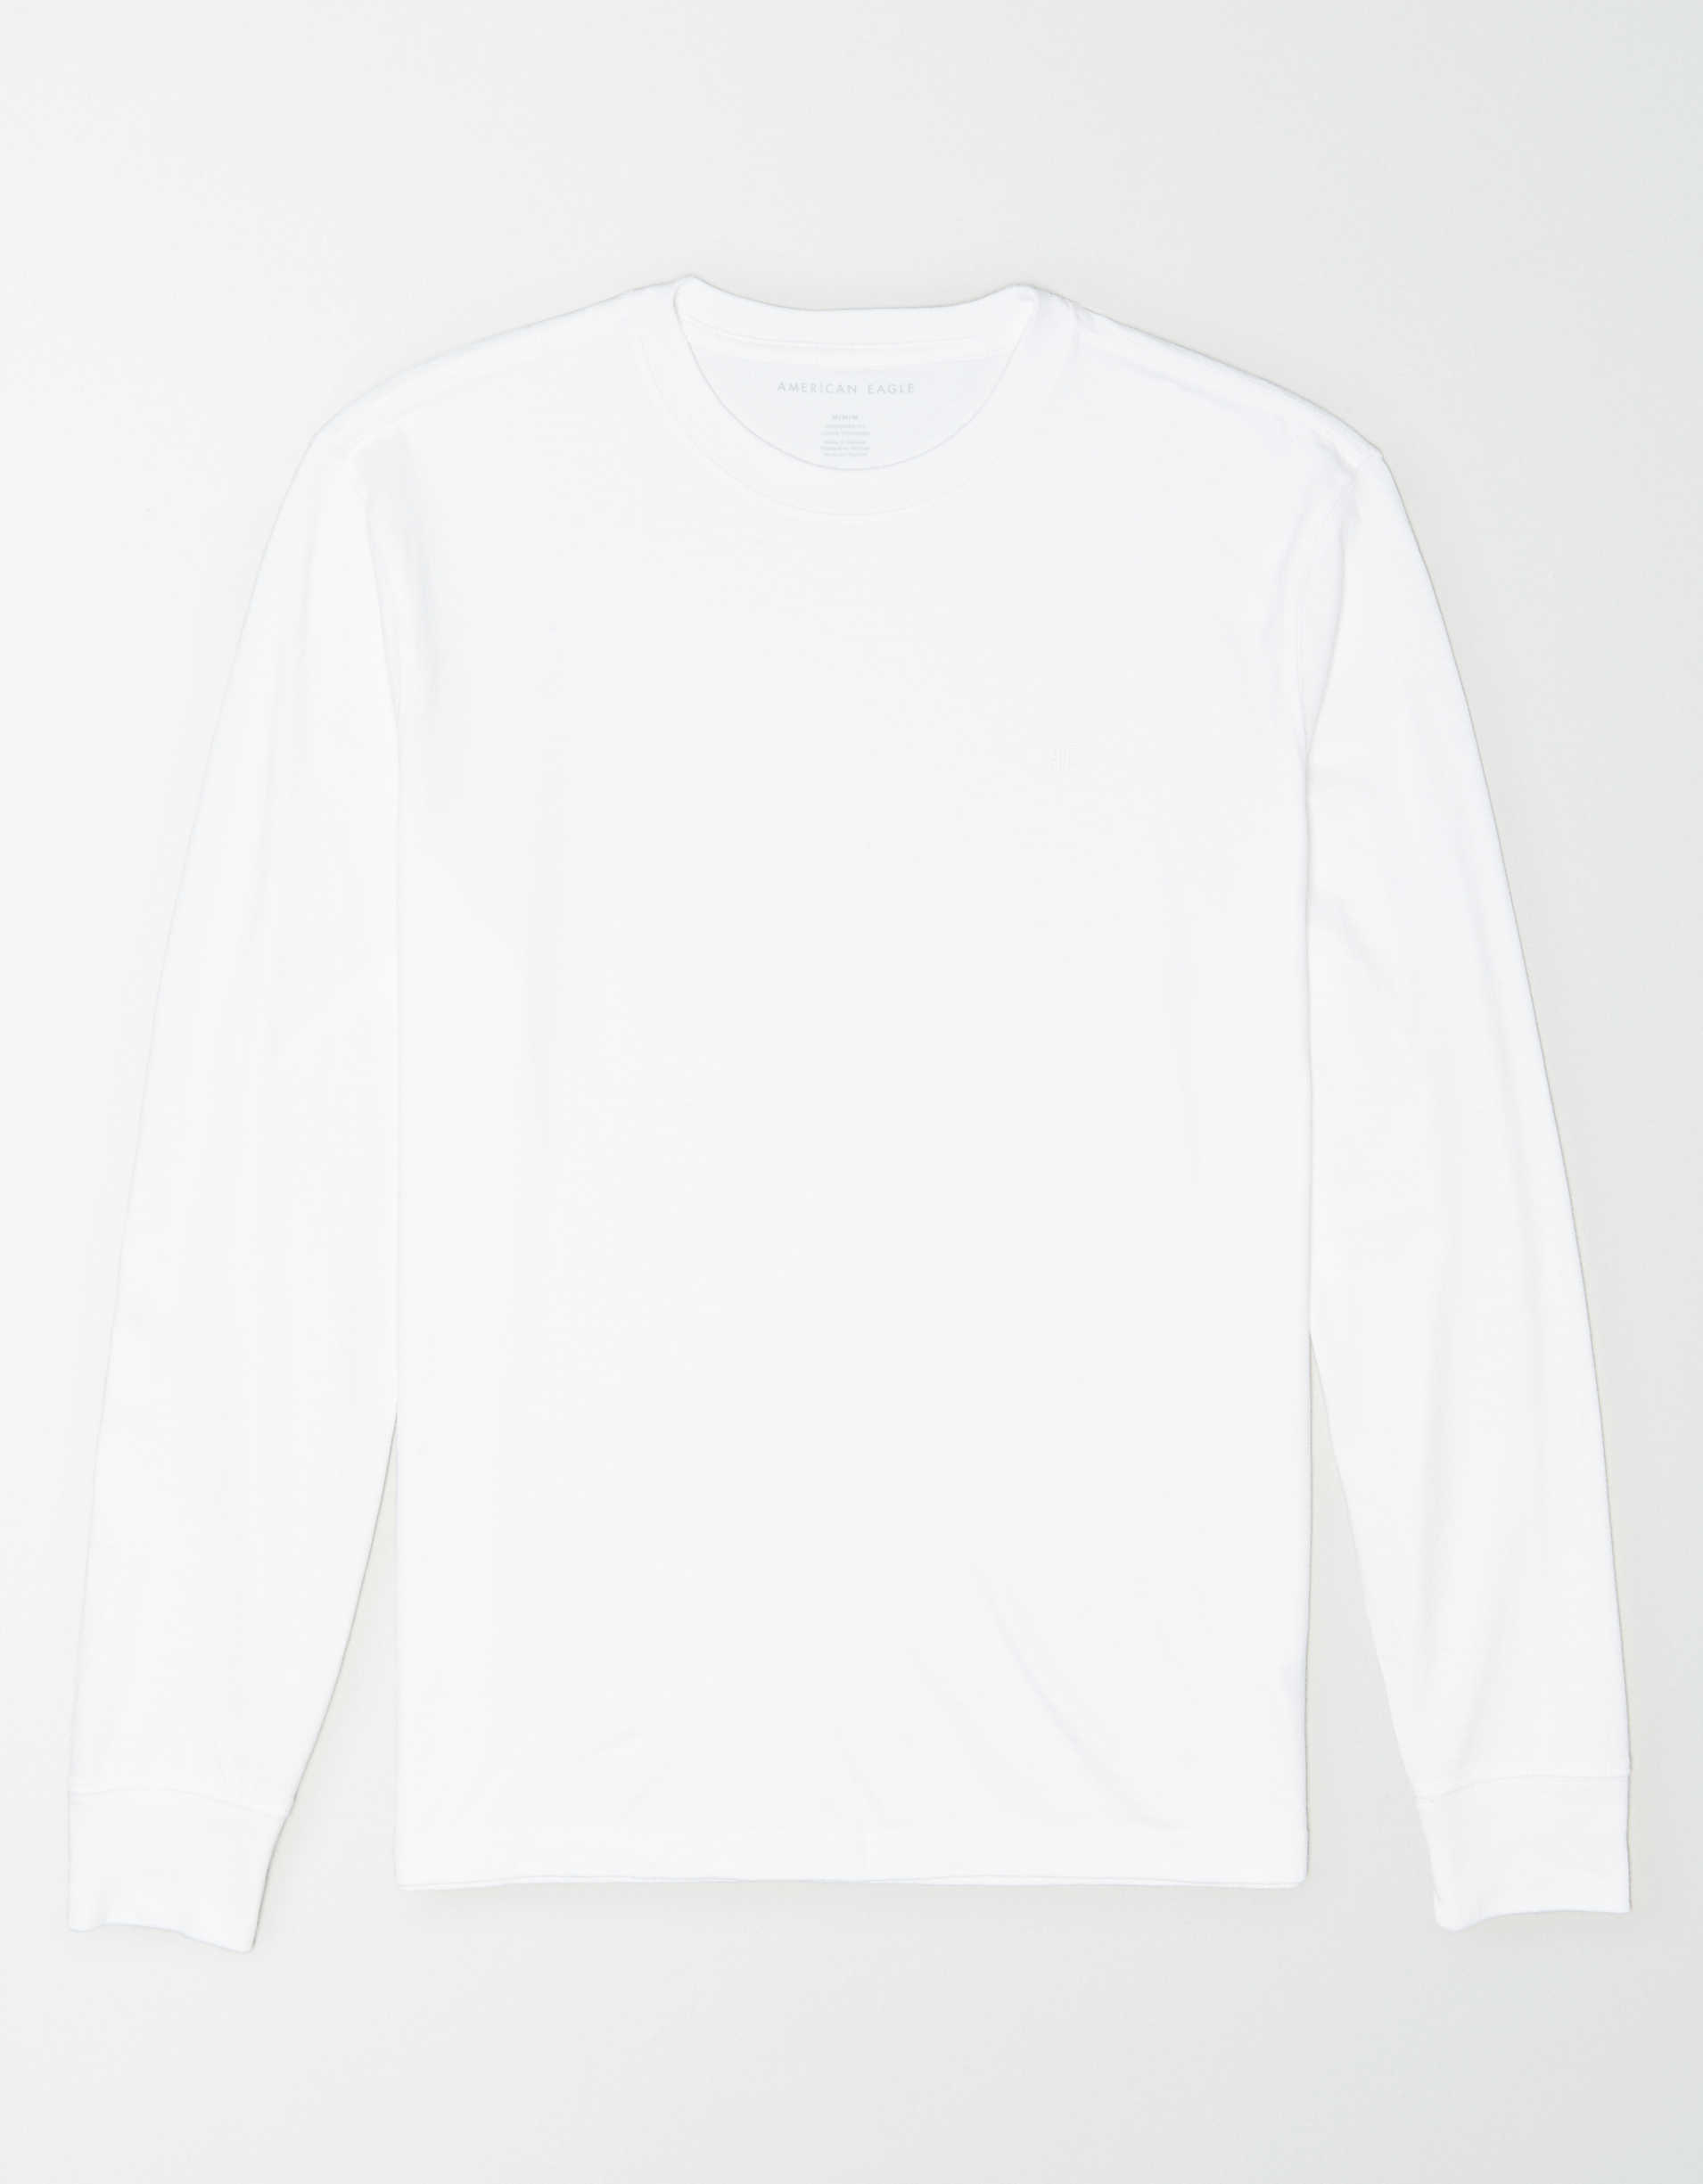 AE Super Soft Long Sleeve T-Shirt